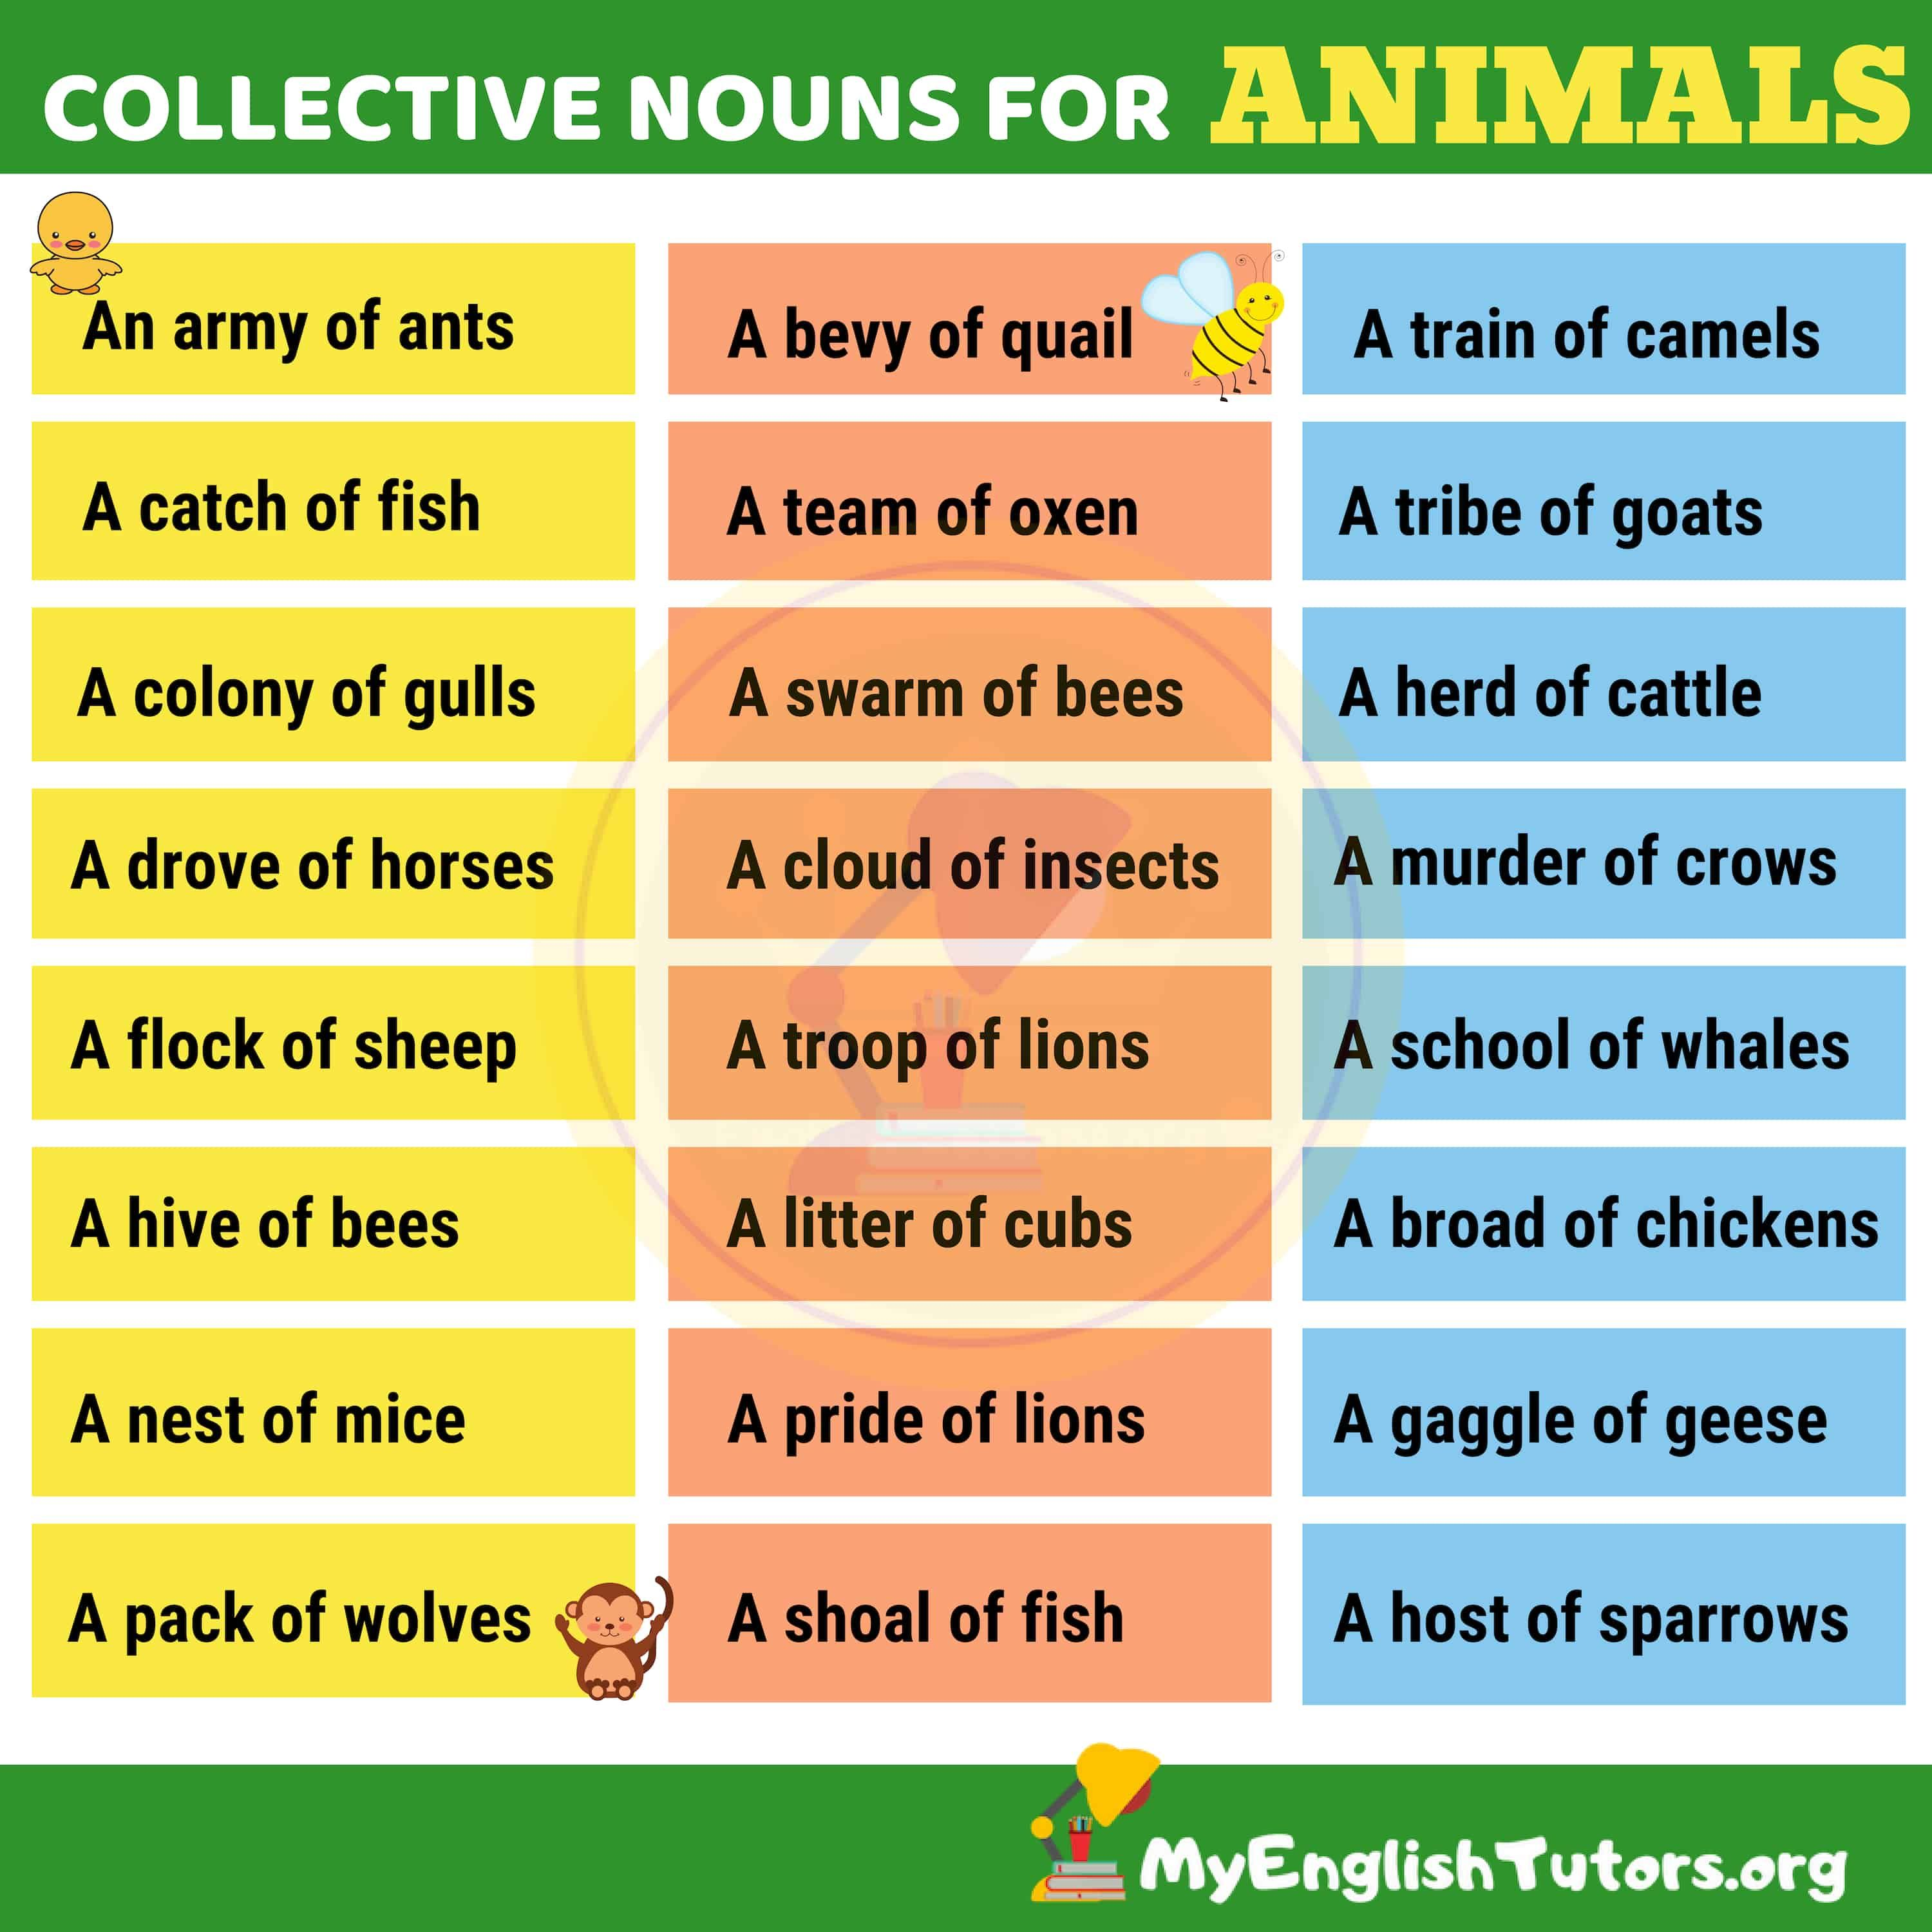 List Of Common Collective Nouns For Animals In English